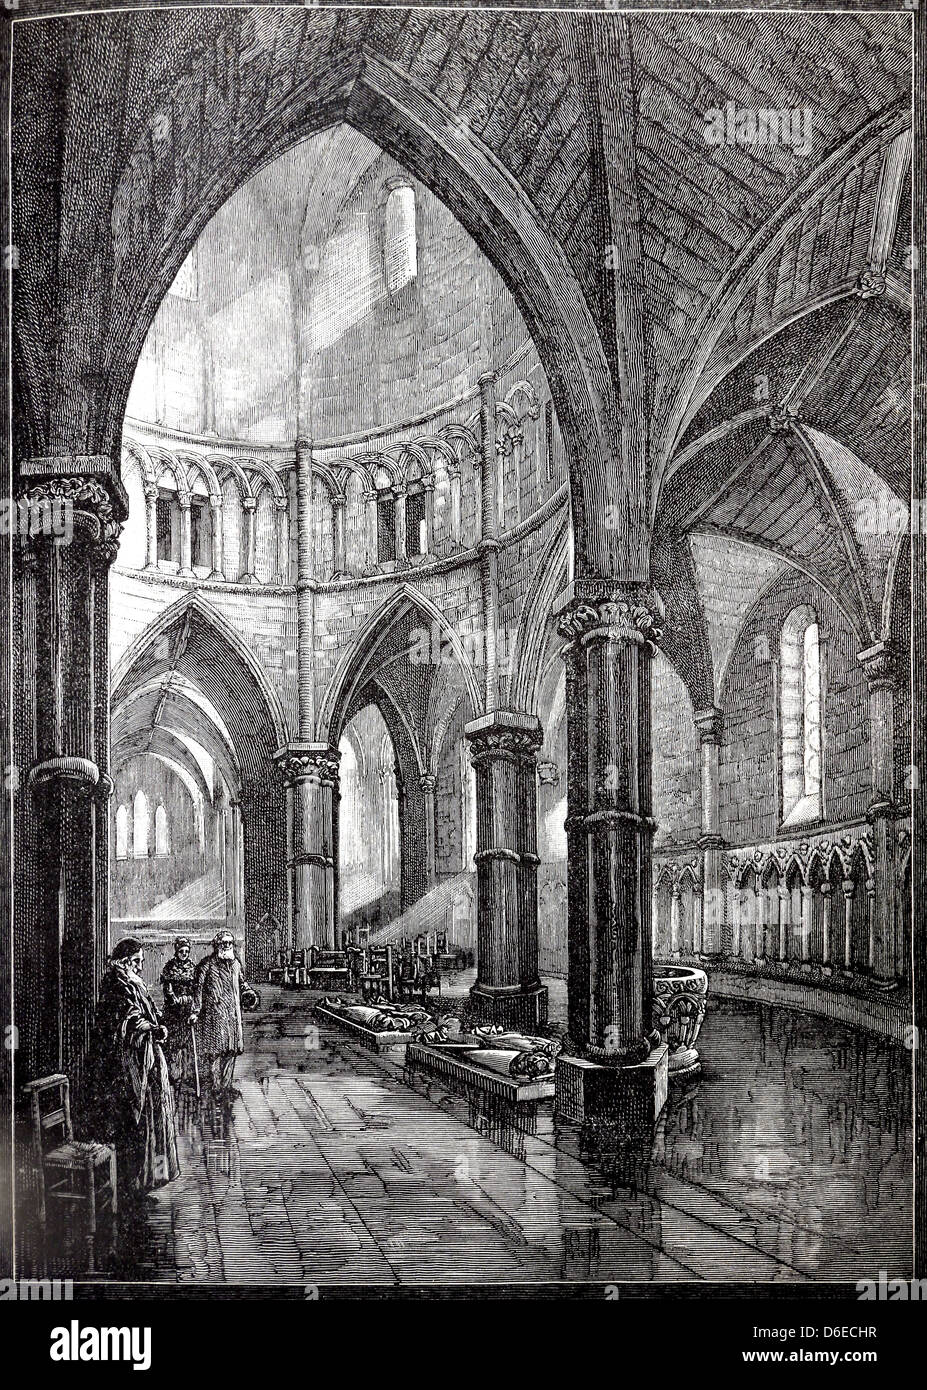 Illustration Of Interior Of The Temple Church London By L Speed From Cassell's History Of England Volume 1 Book Stock Photo